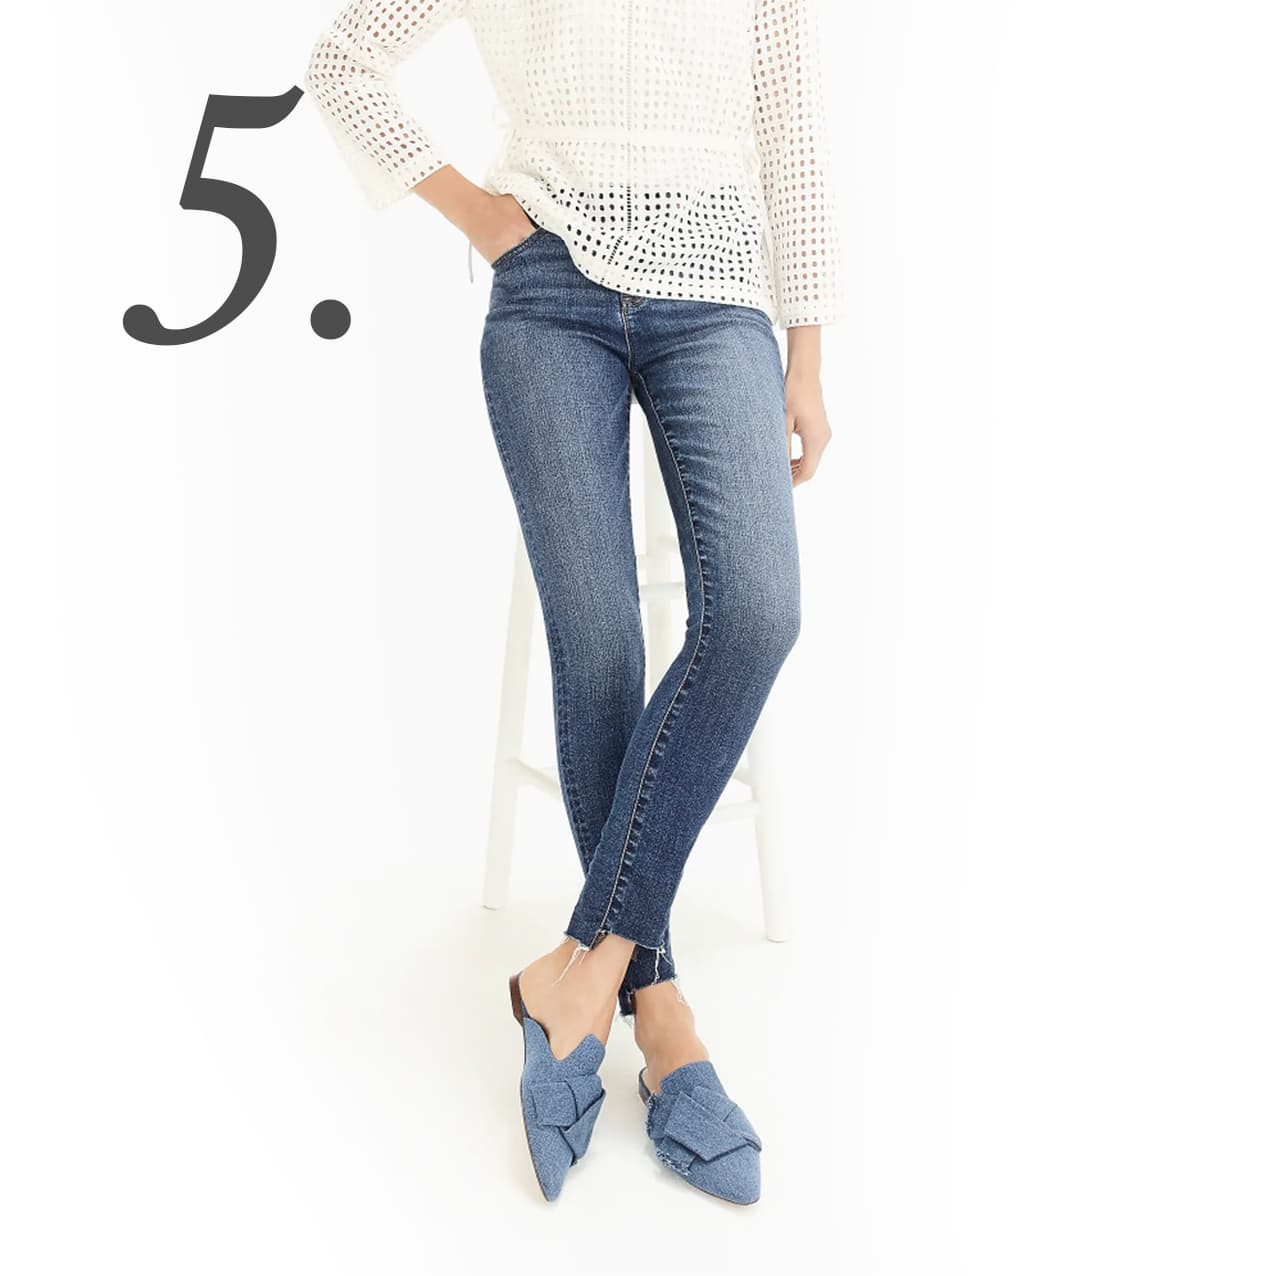 9 high-rise toothpick jean with step hem | www.ashleybrookedesigns.com